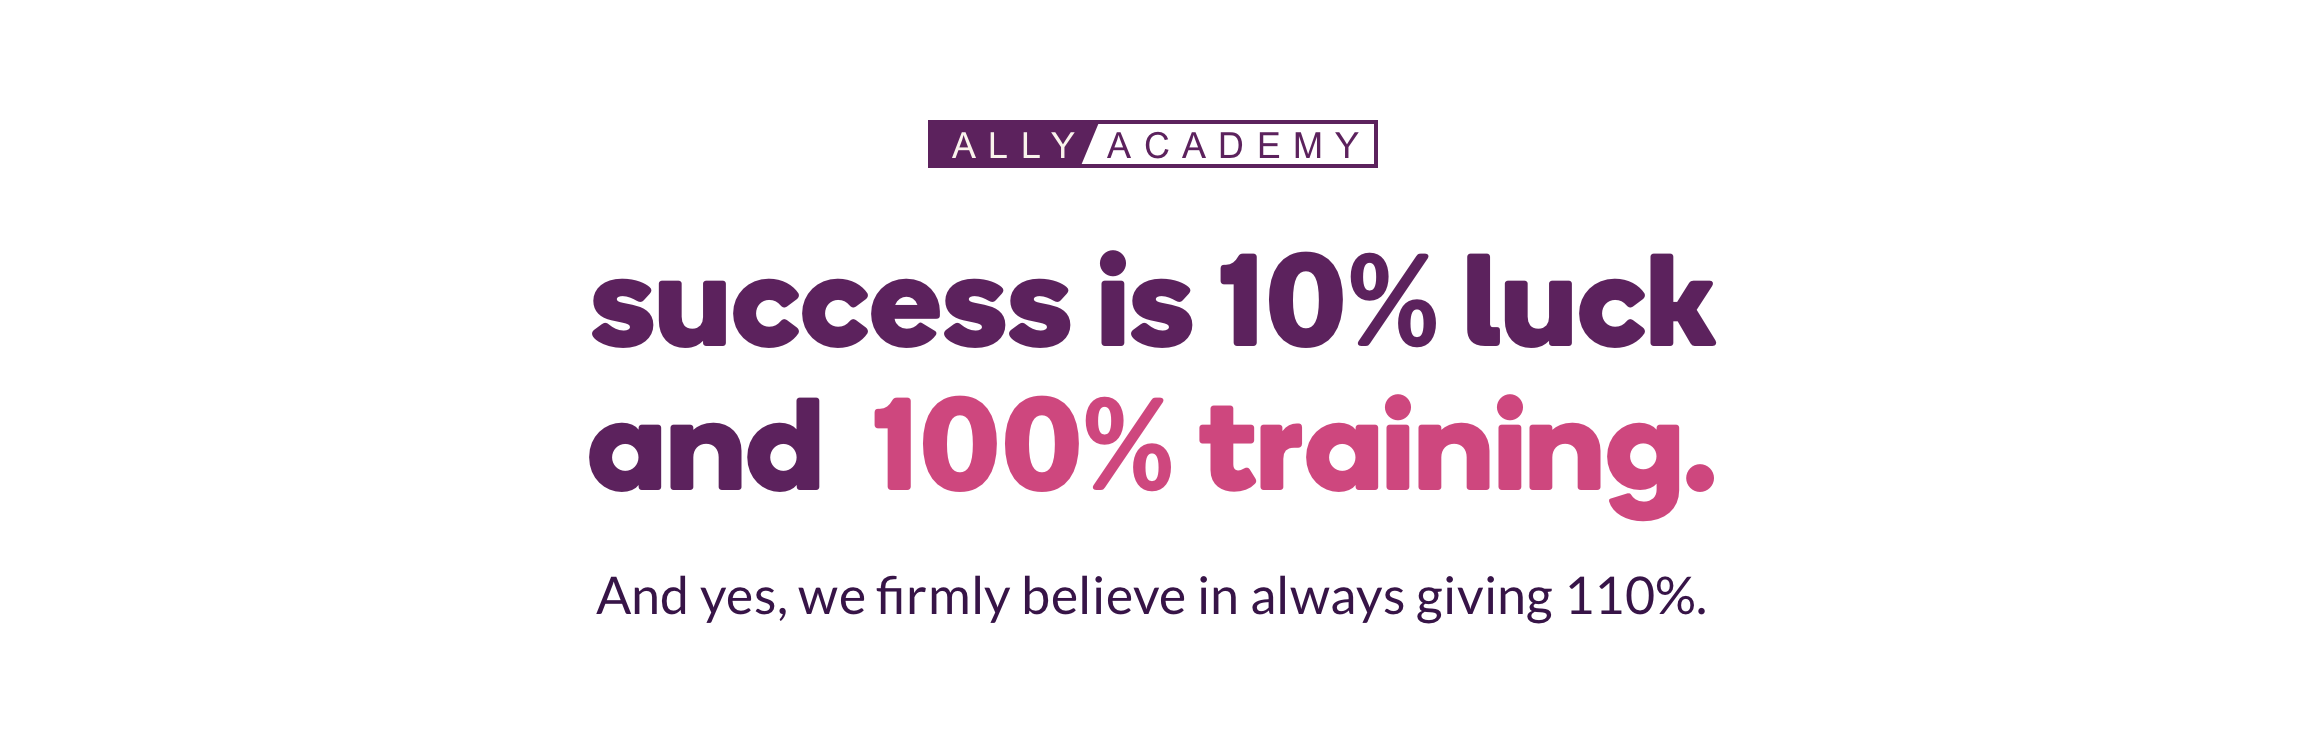 Ally Academy, success is 10% luck and 100% training and yes, we firmly believe in always giving 110%